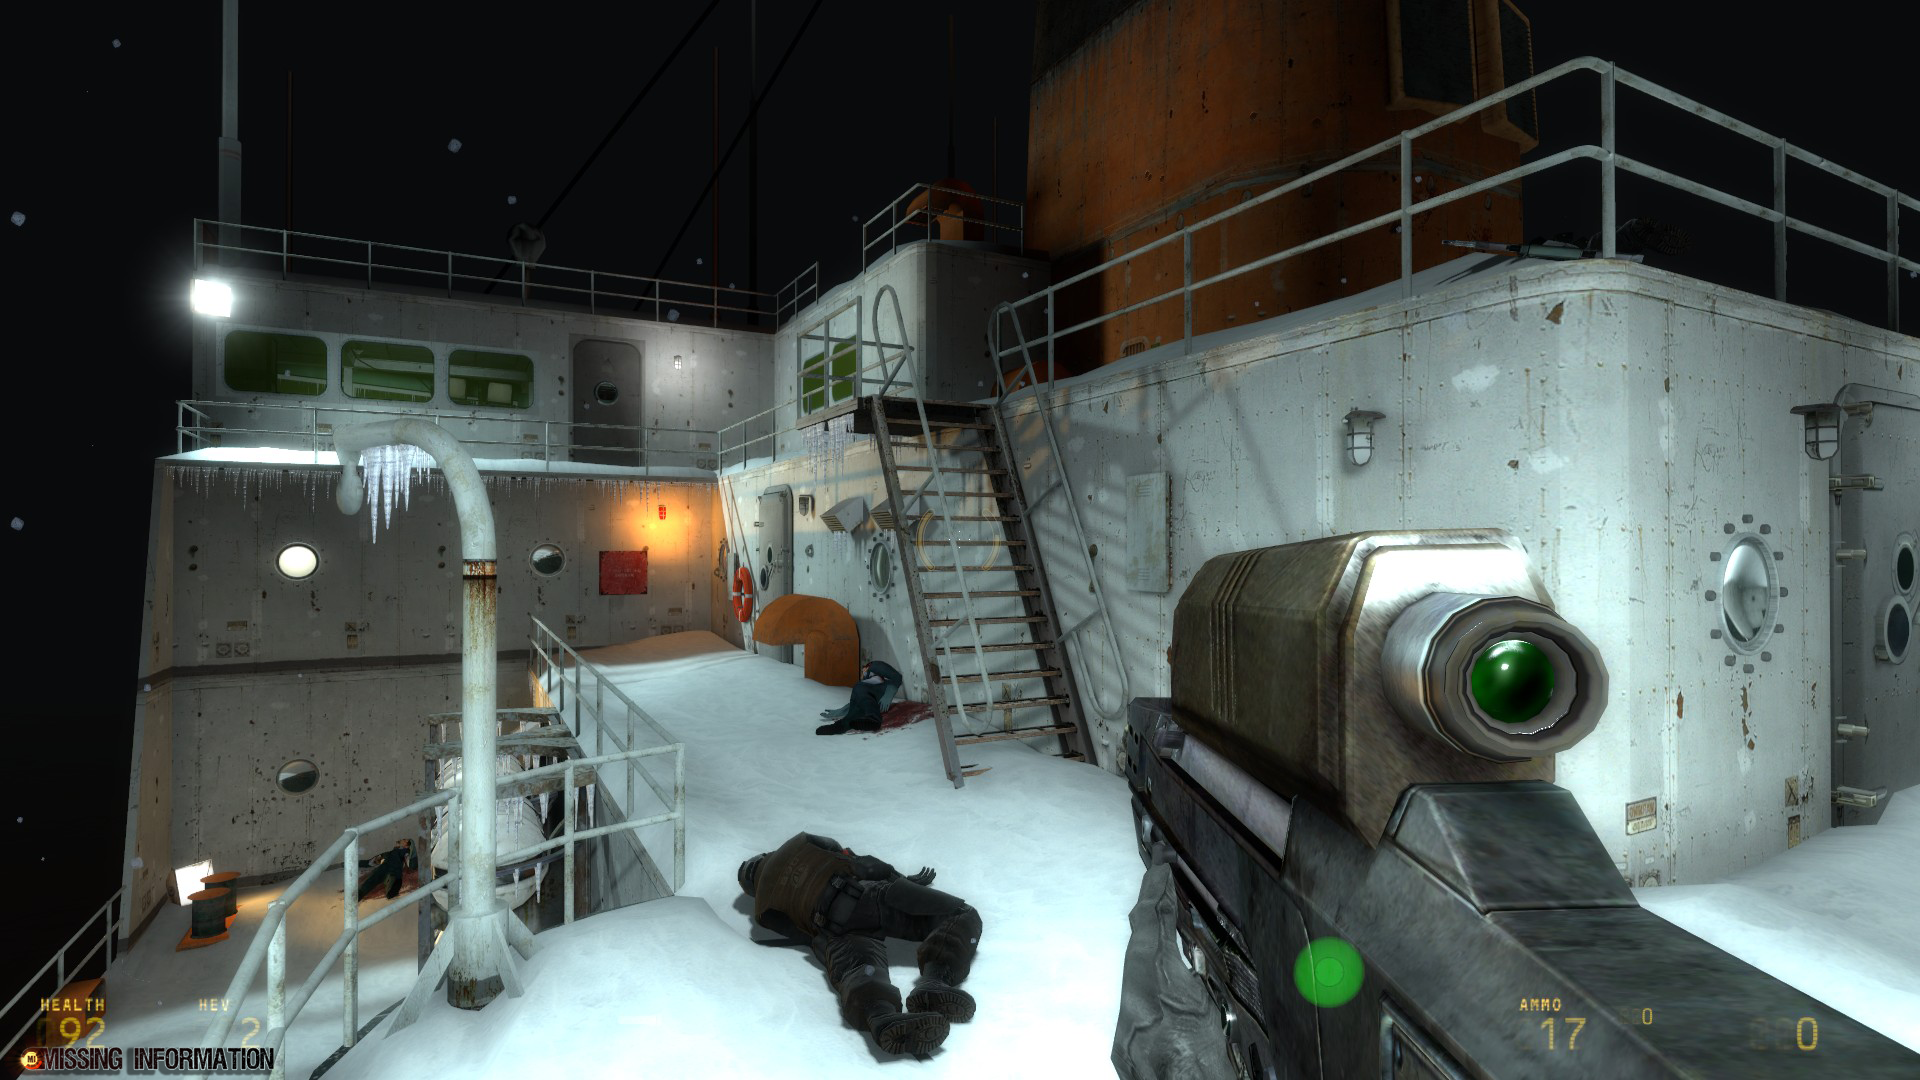 The Borealis Image Missing Information Mod For Half Life